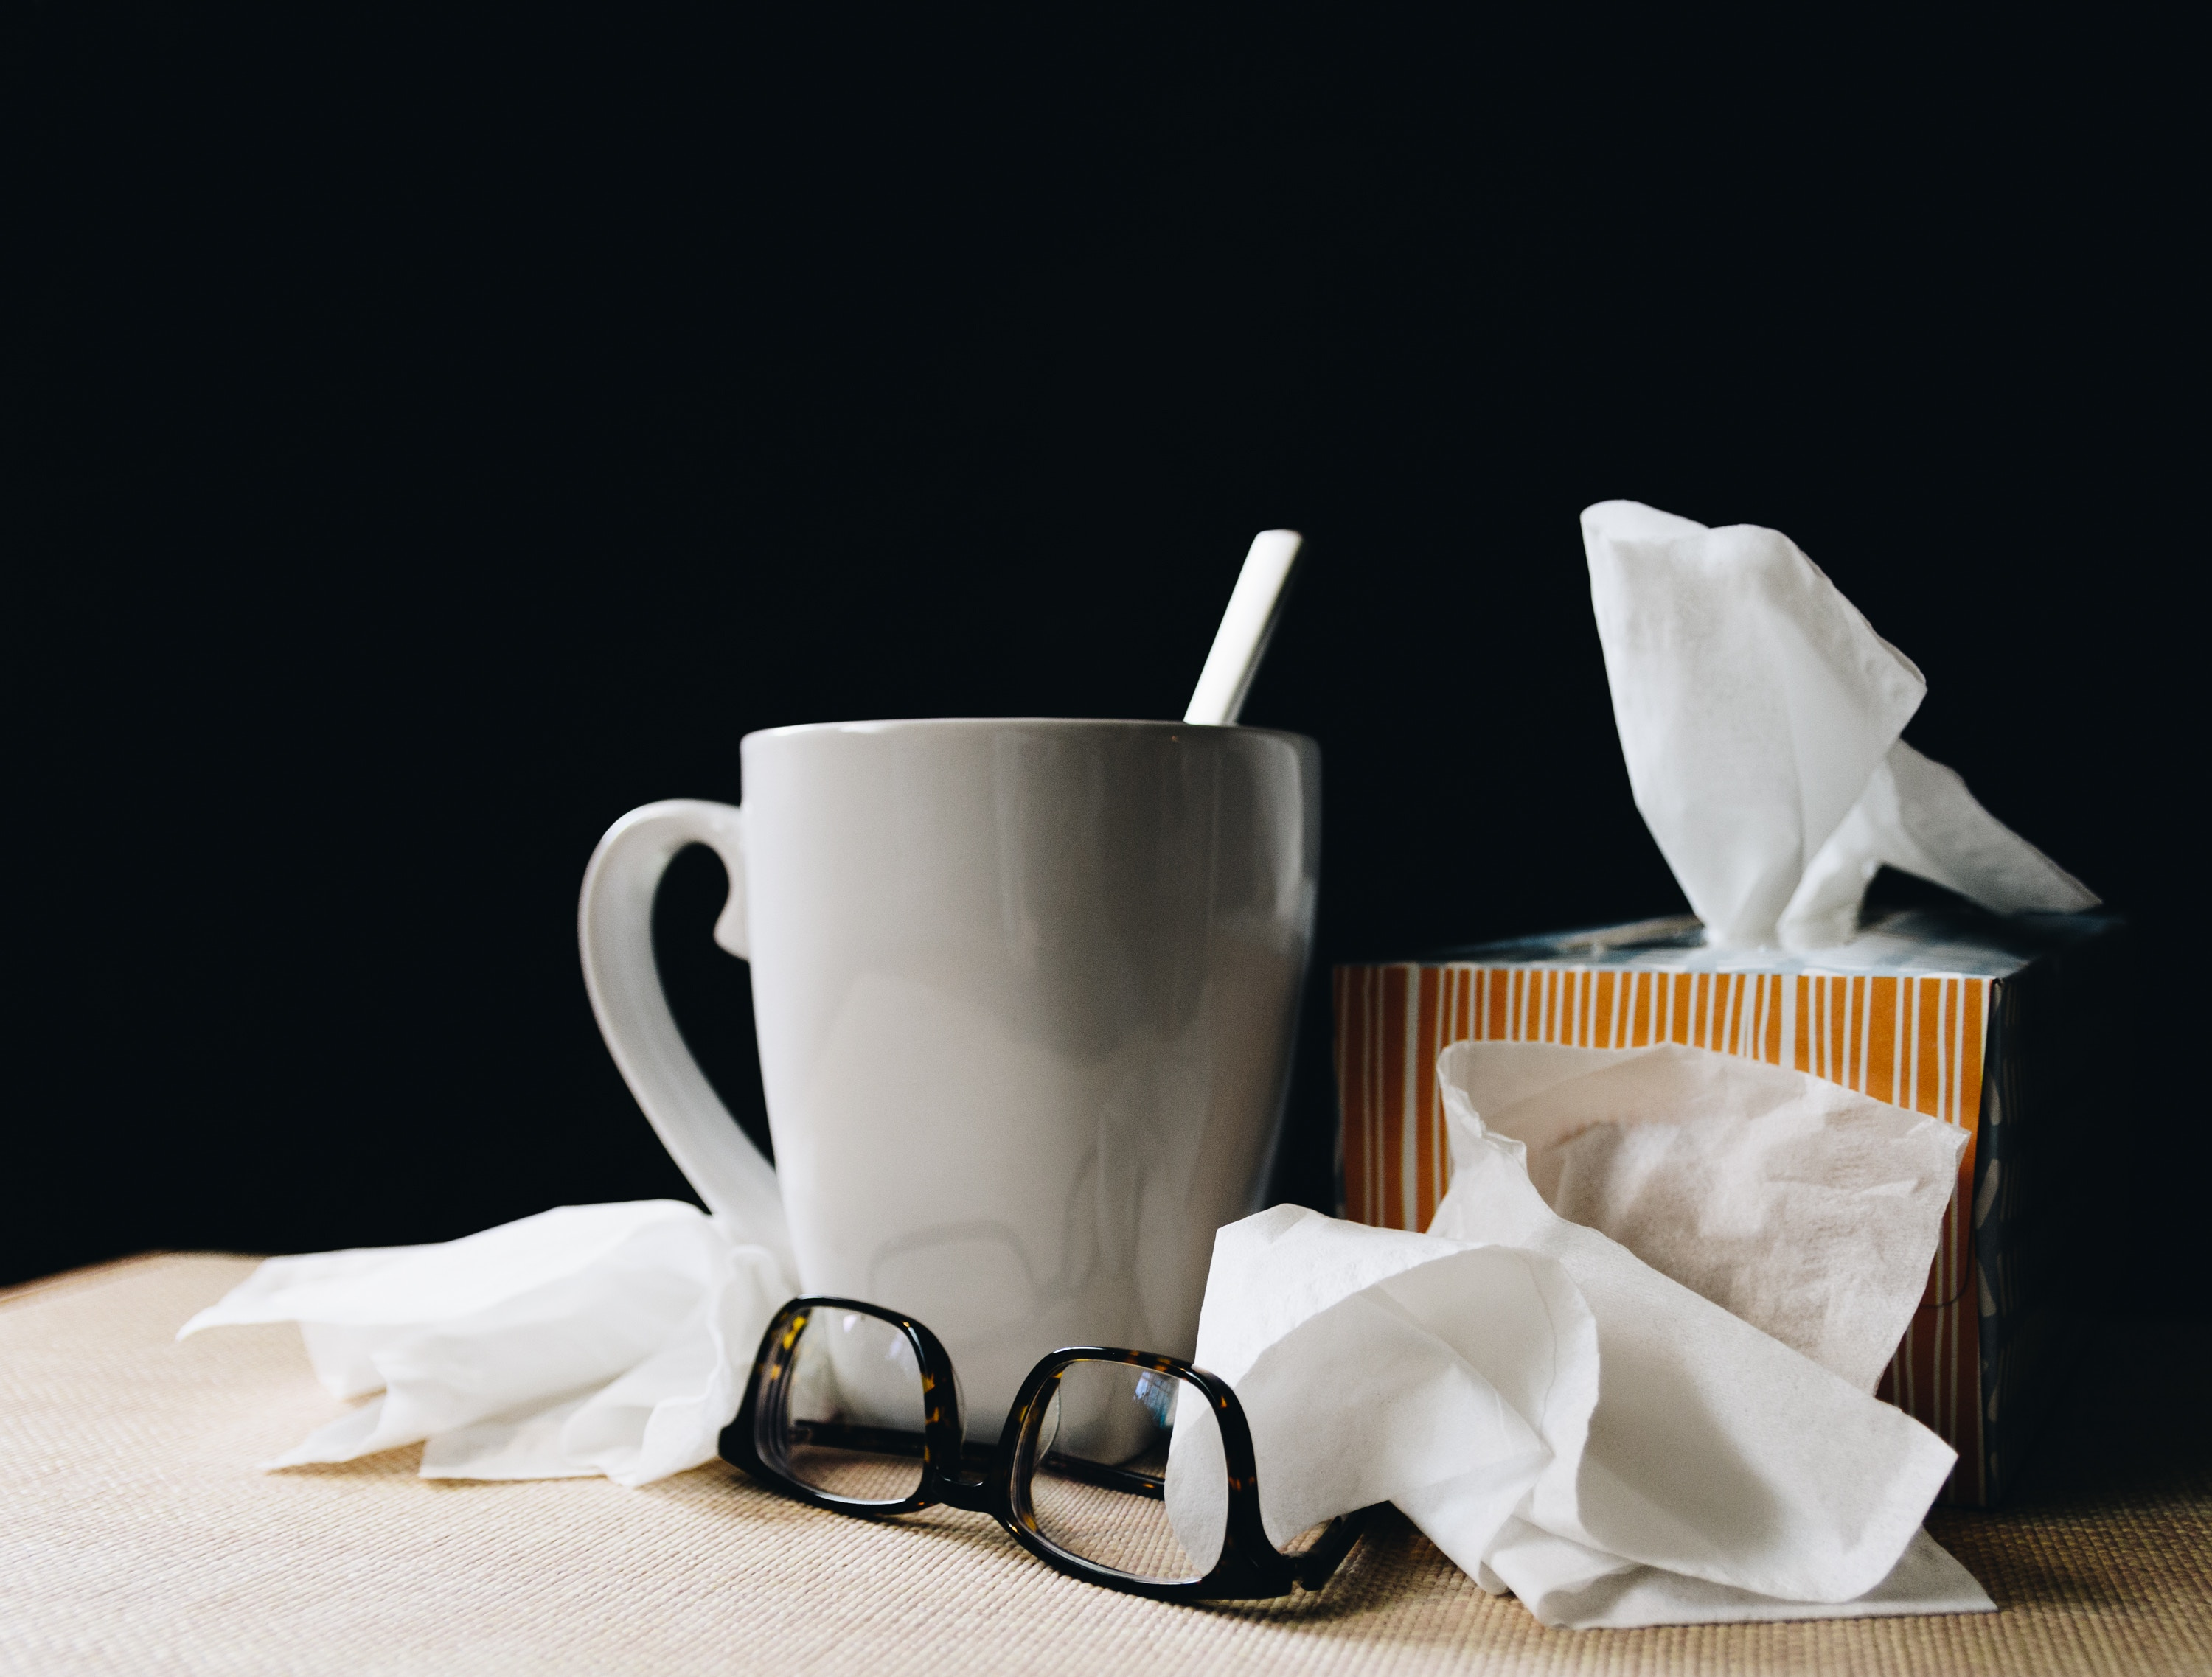 Should I go to work with a sinus infection?